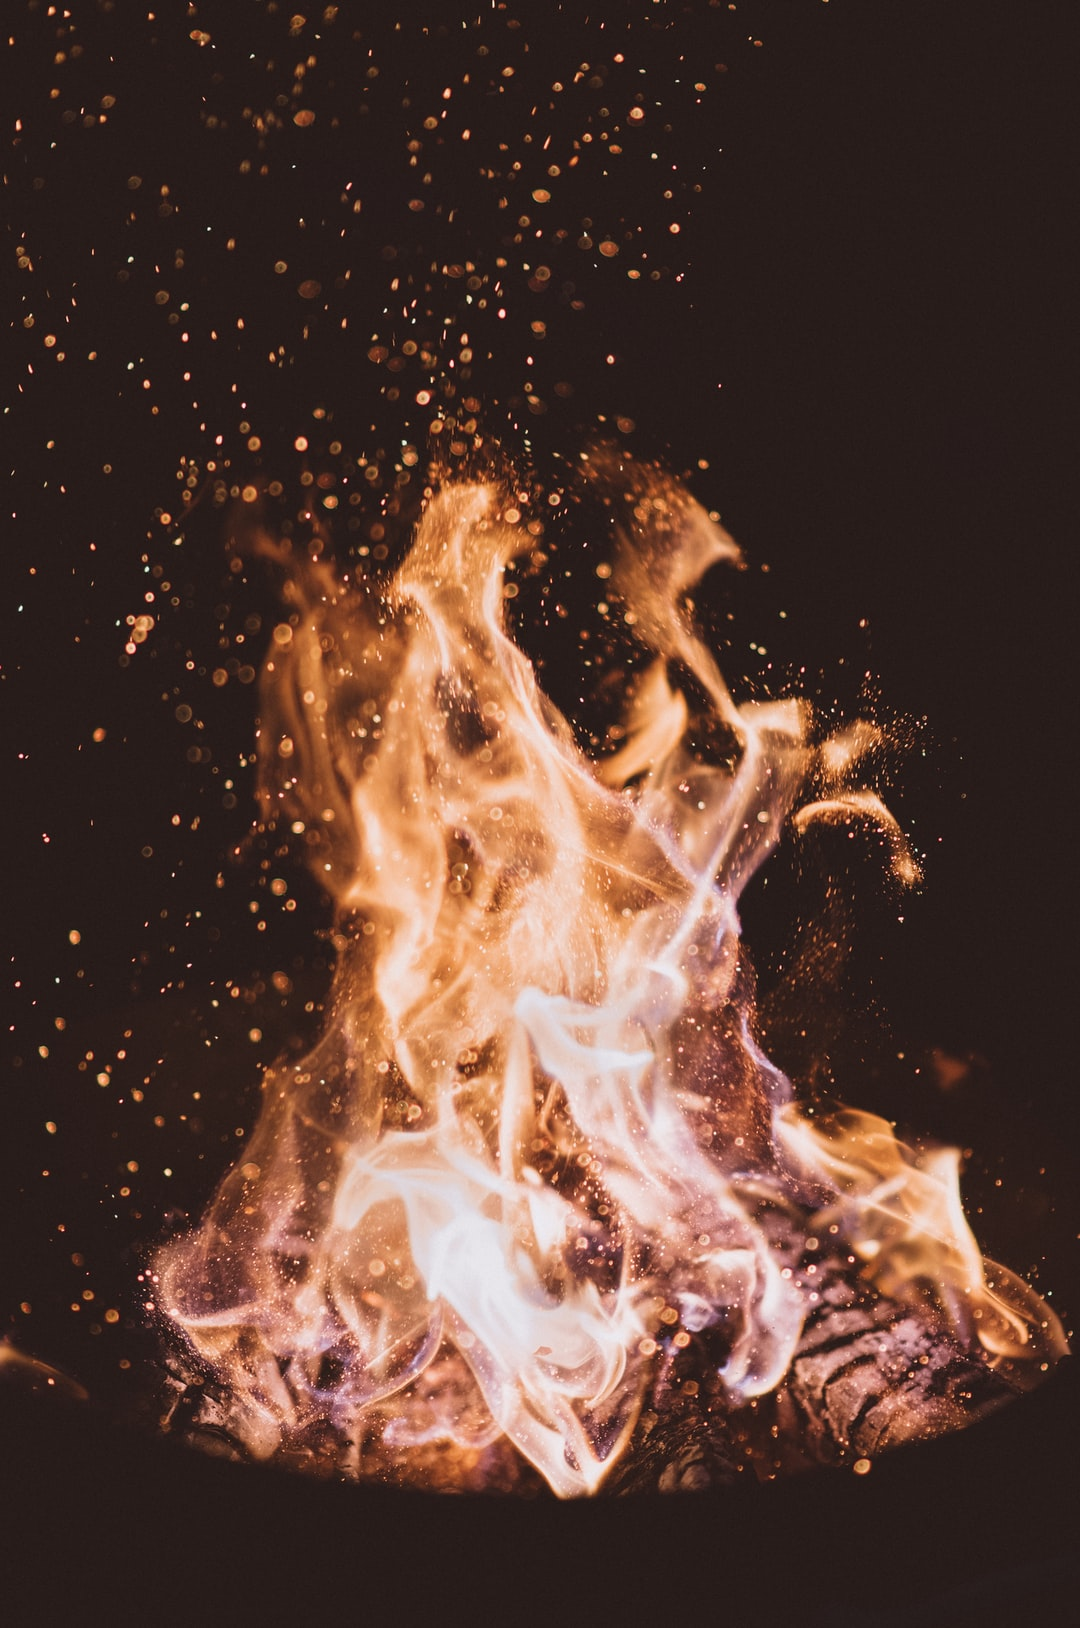 Fire Wallpapers: Free HD Download [500+